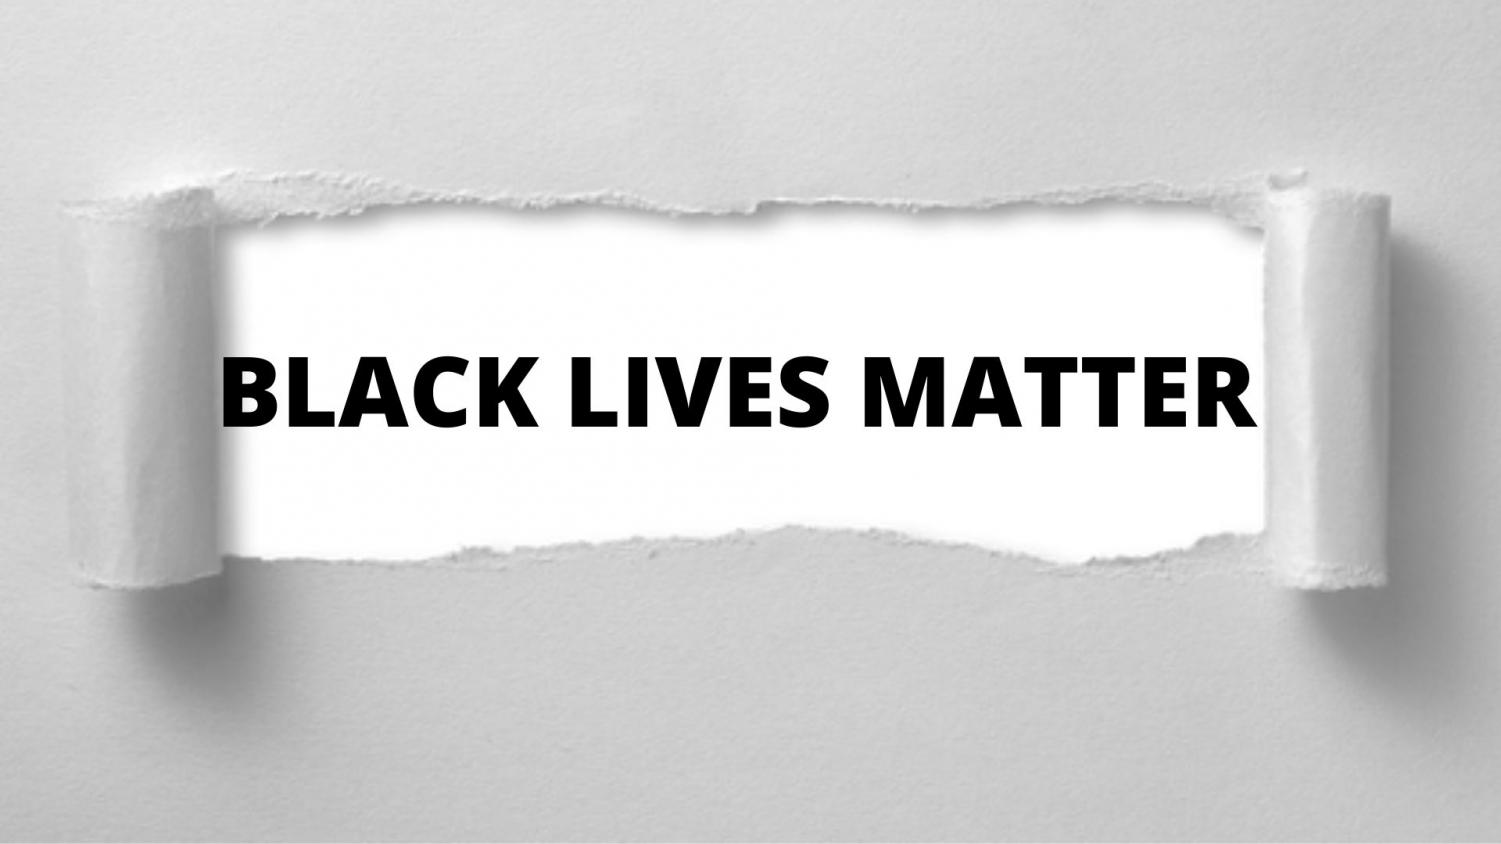 The emphasis on the Black Lives Matter movement has become stronger than ever and will continue to grow.